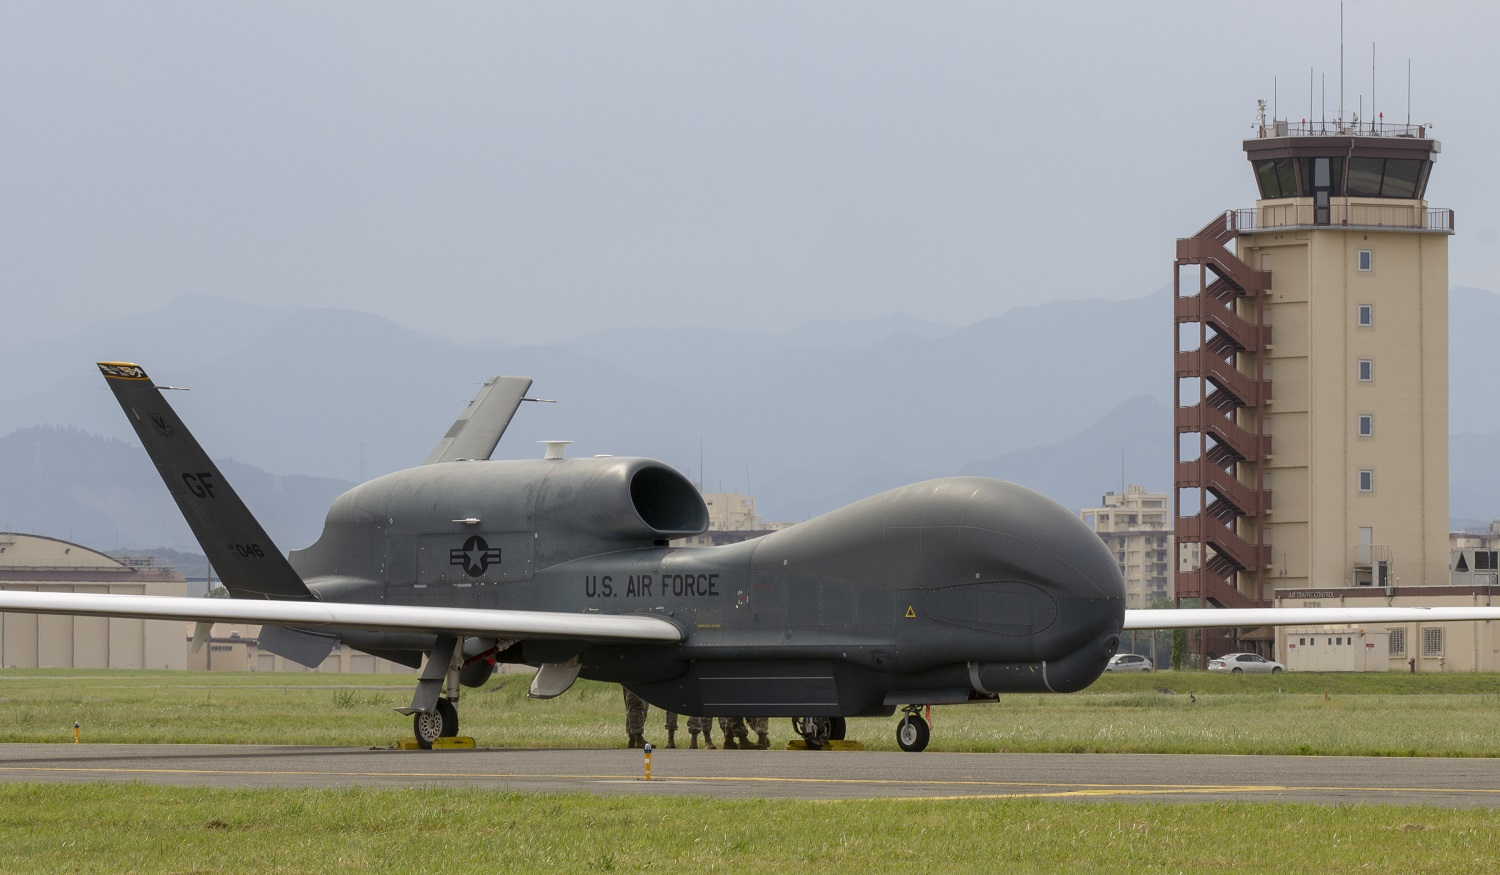 RQ-4 Global Hawk Unmanned Aerial Vehicles Return to Yokota AB After Typhoon